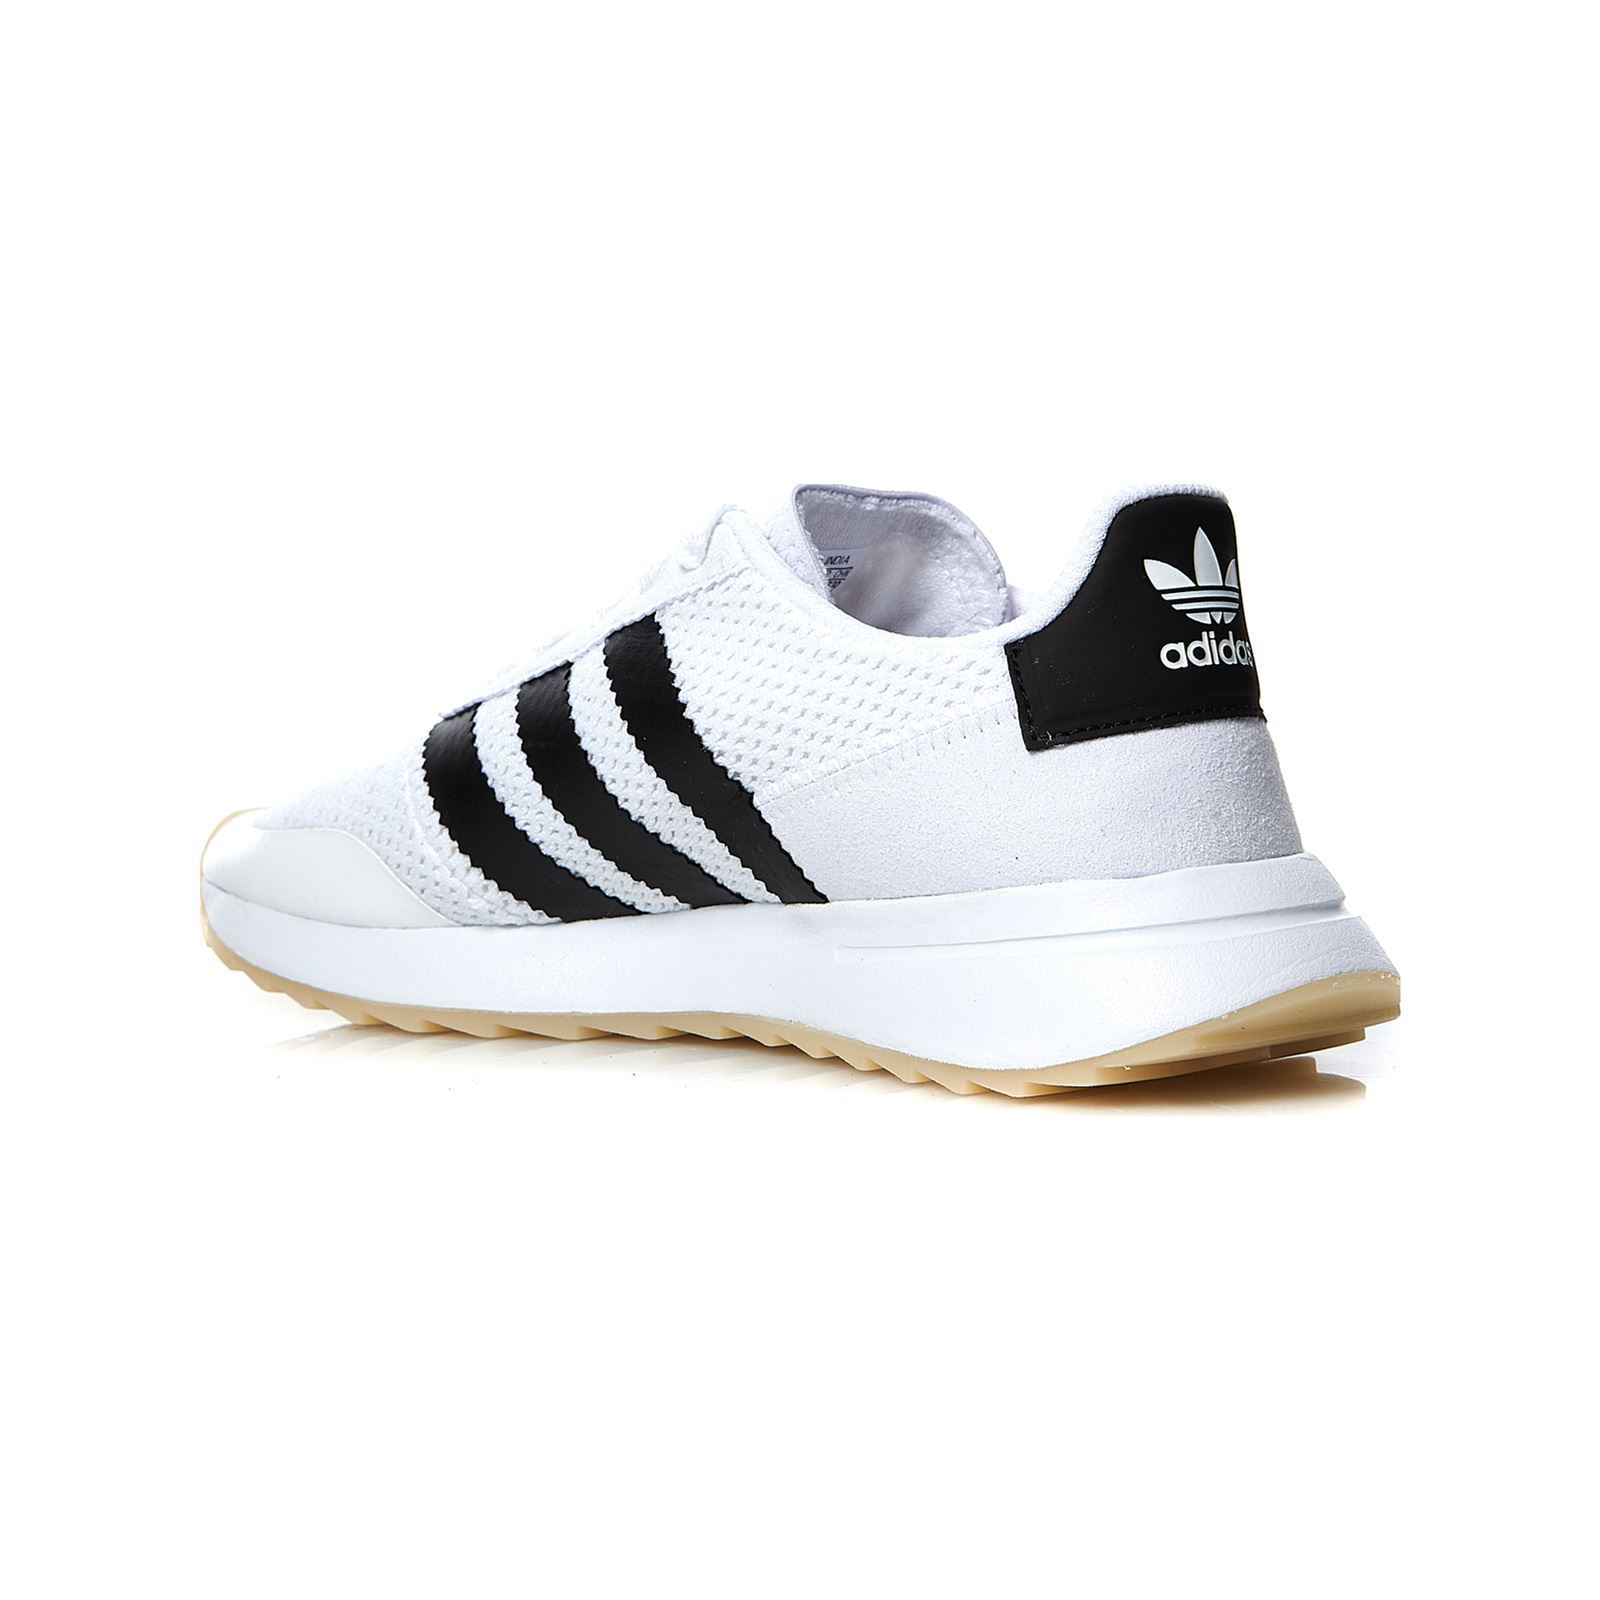 BlancBrandalley Baskets Originals Adidas W Flb TK1ulFc53J